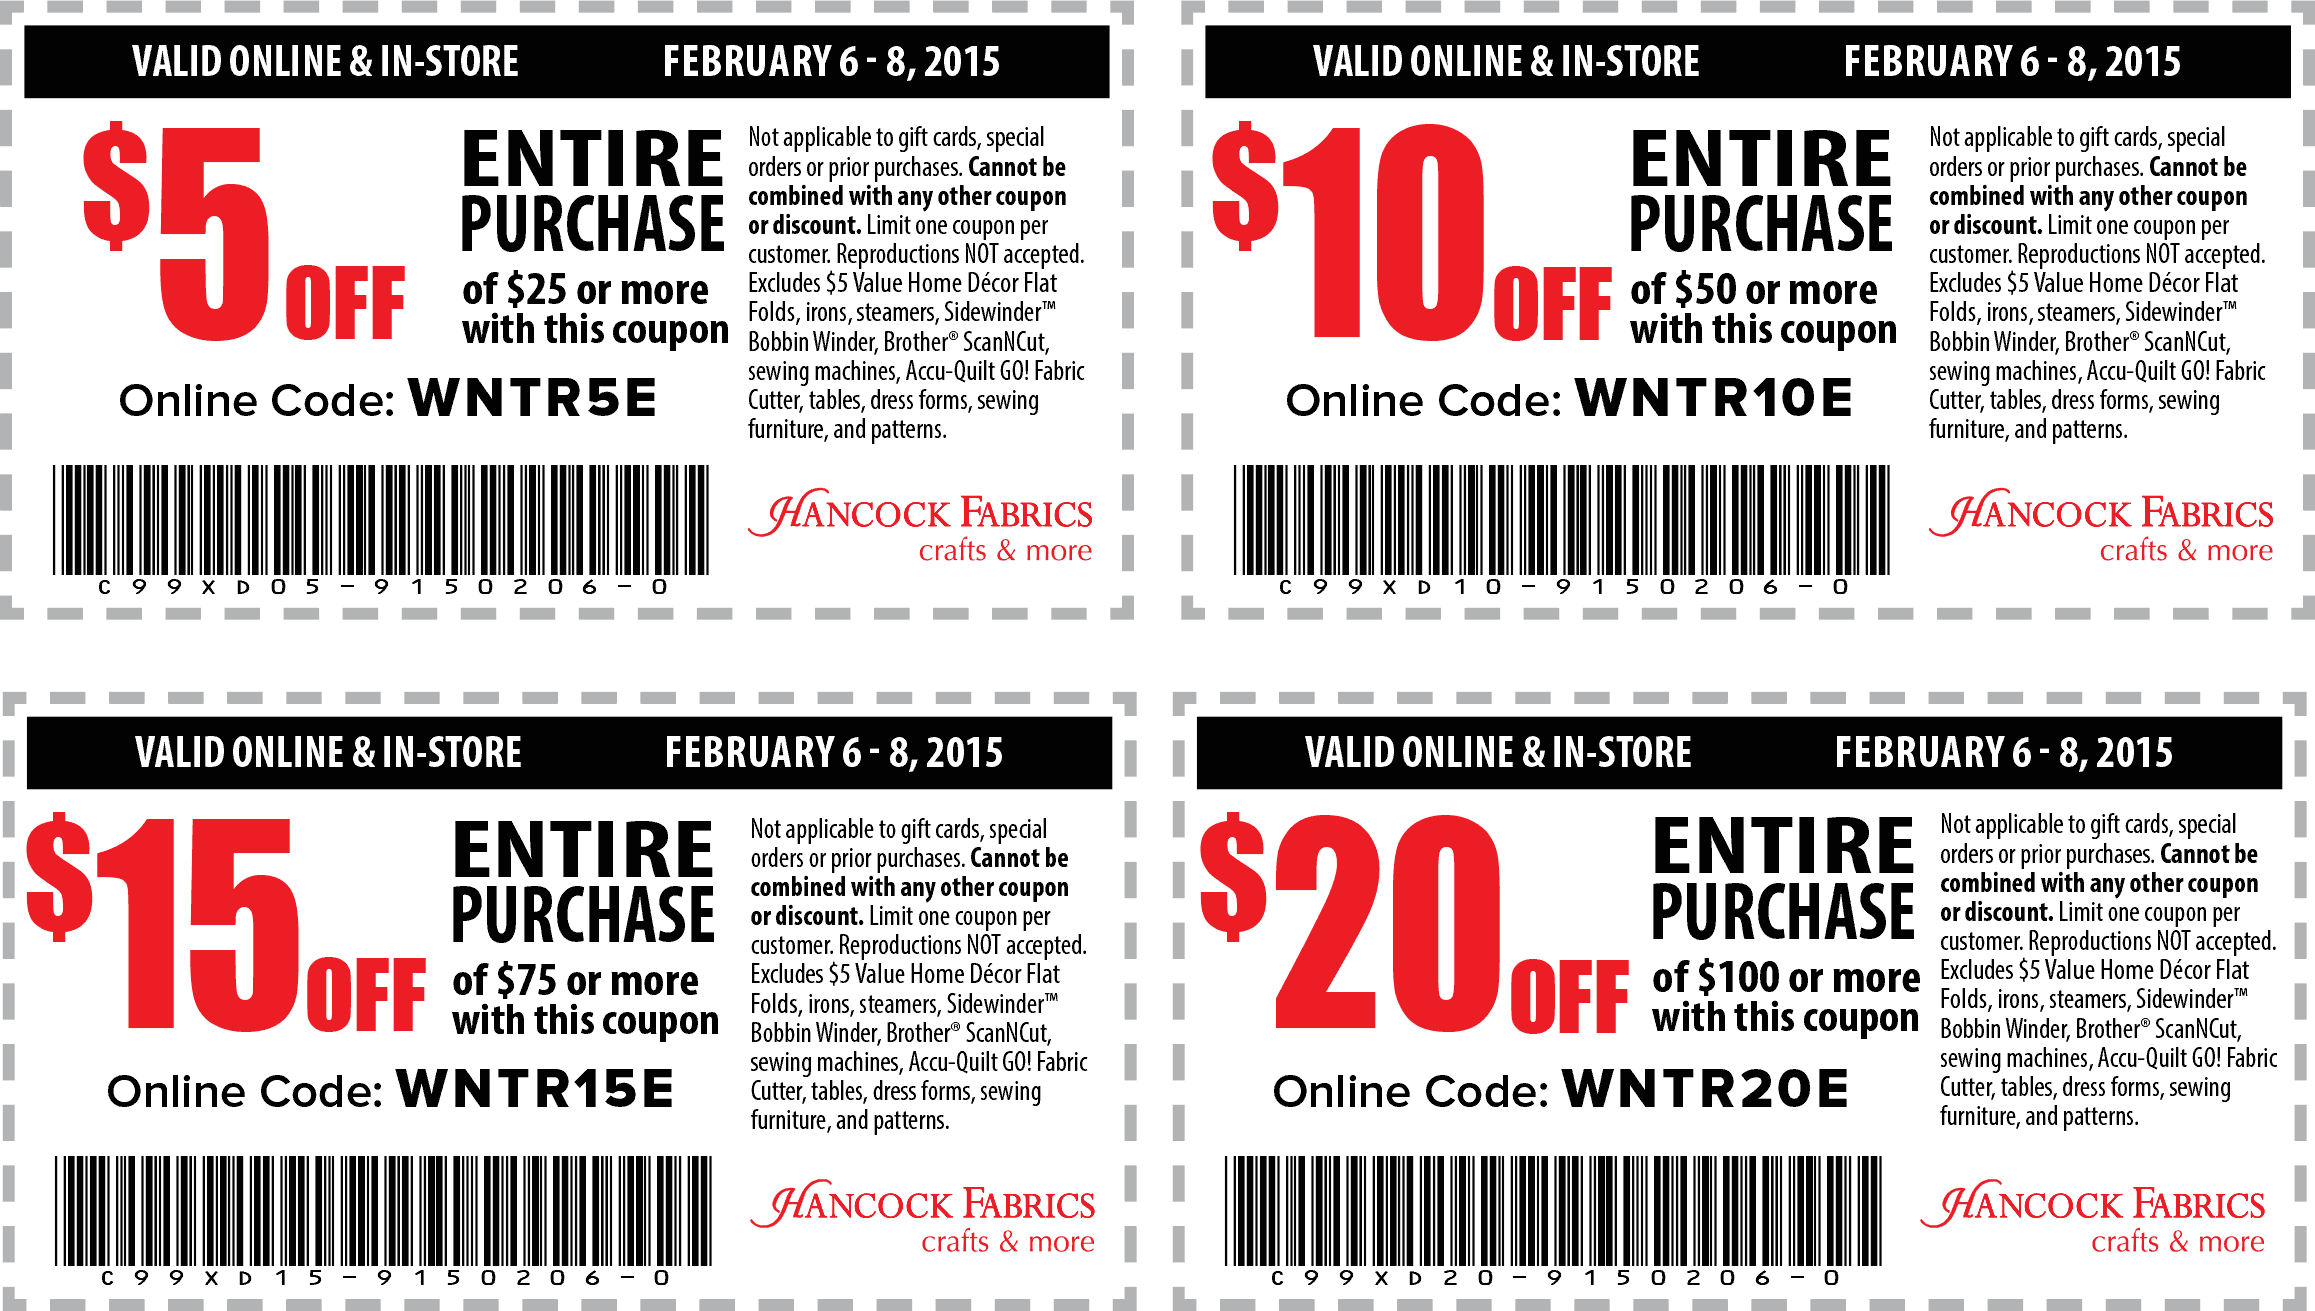 Hancock Fabrics Coupon December 2016 $5 off $25 & more at Hancock Fabrics, or online via promo code WNTR5E